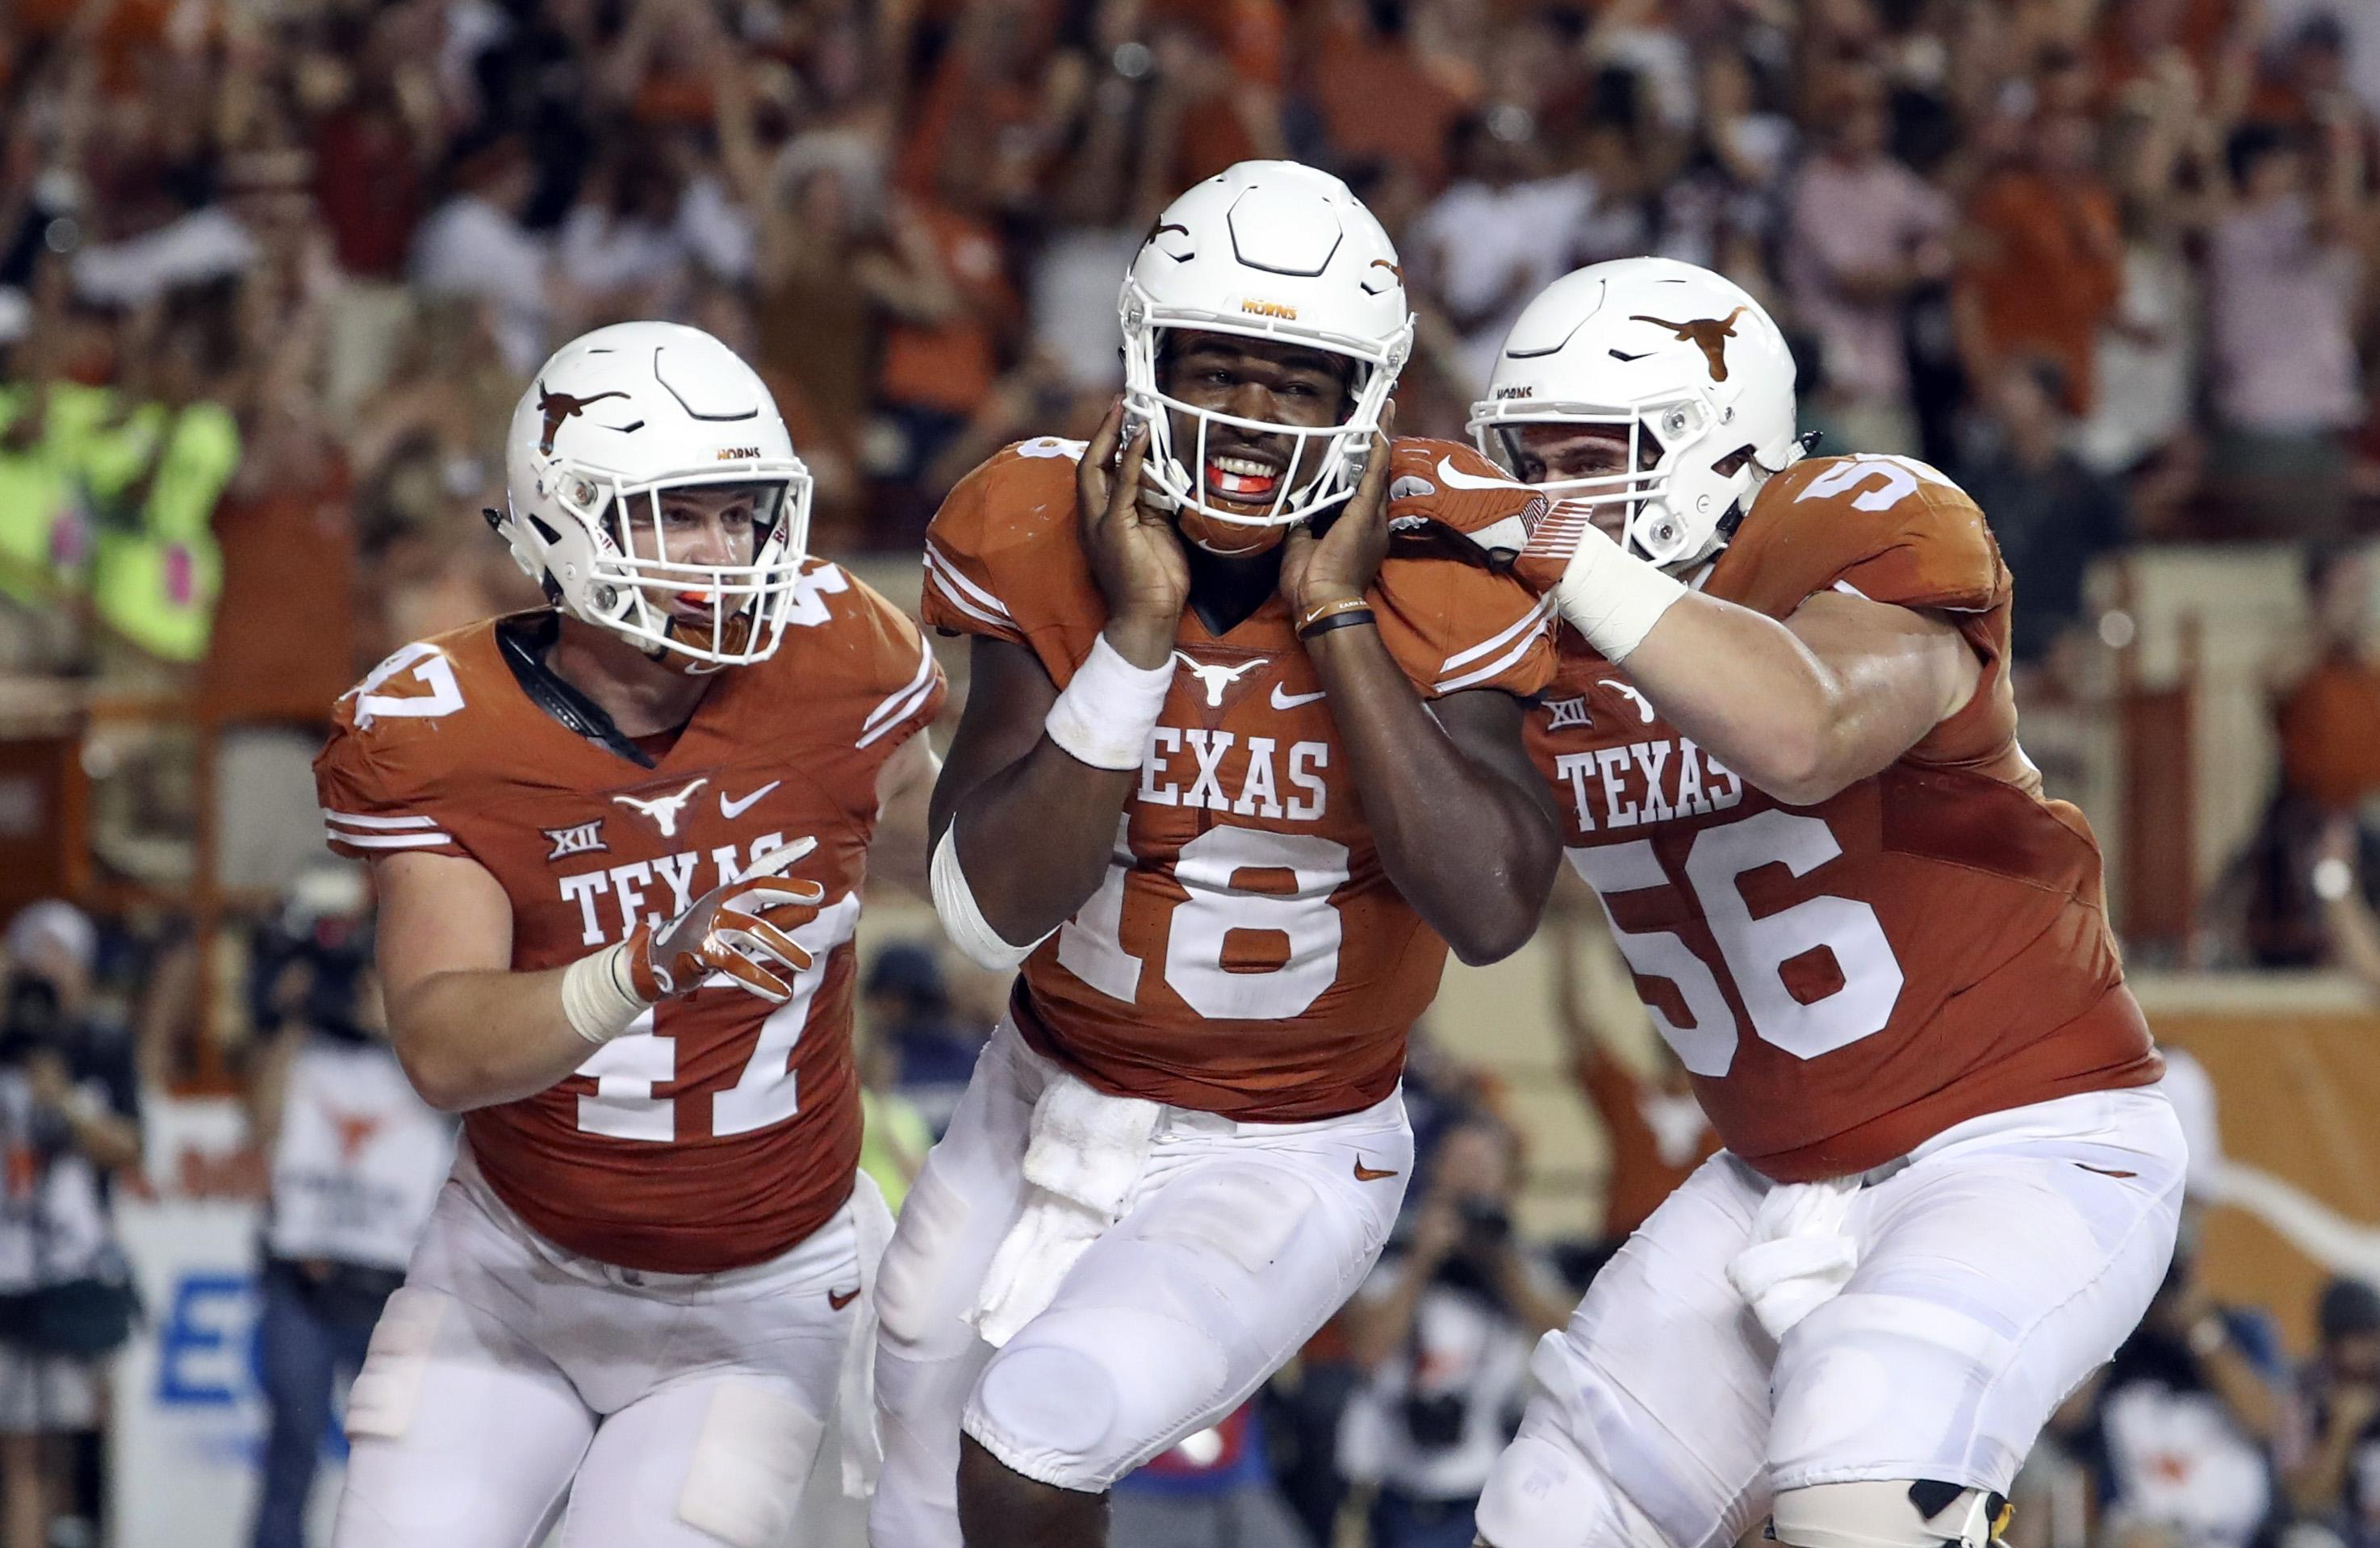 19f881f79b0 Texas  burnt orange jerseys are easily recognizable and one of the best  uniforms in the nation.